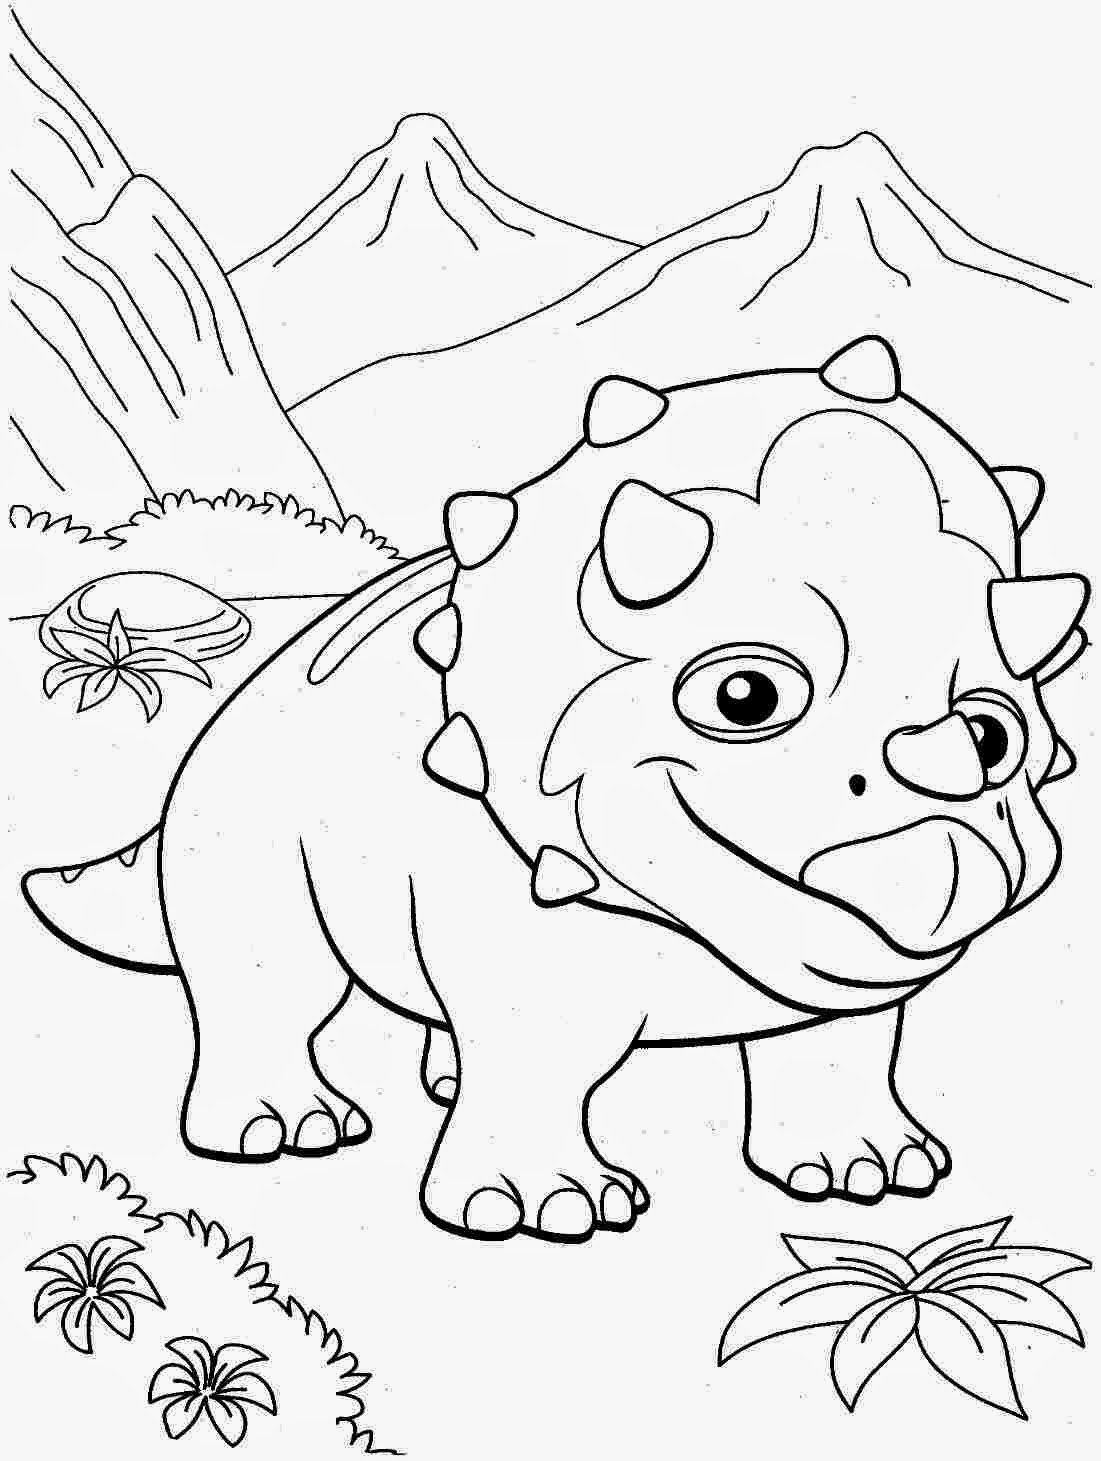 coloring dinosaur free printables dinosaurs free to color for kids tyrannosaur rex cartoon dinosaur free printables coloring